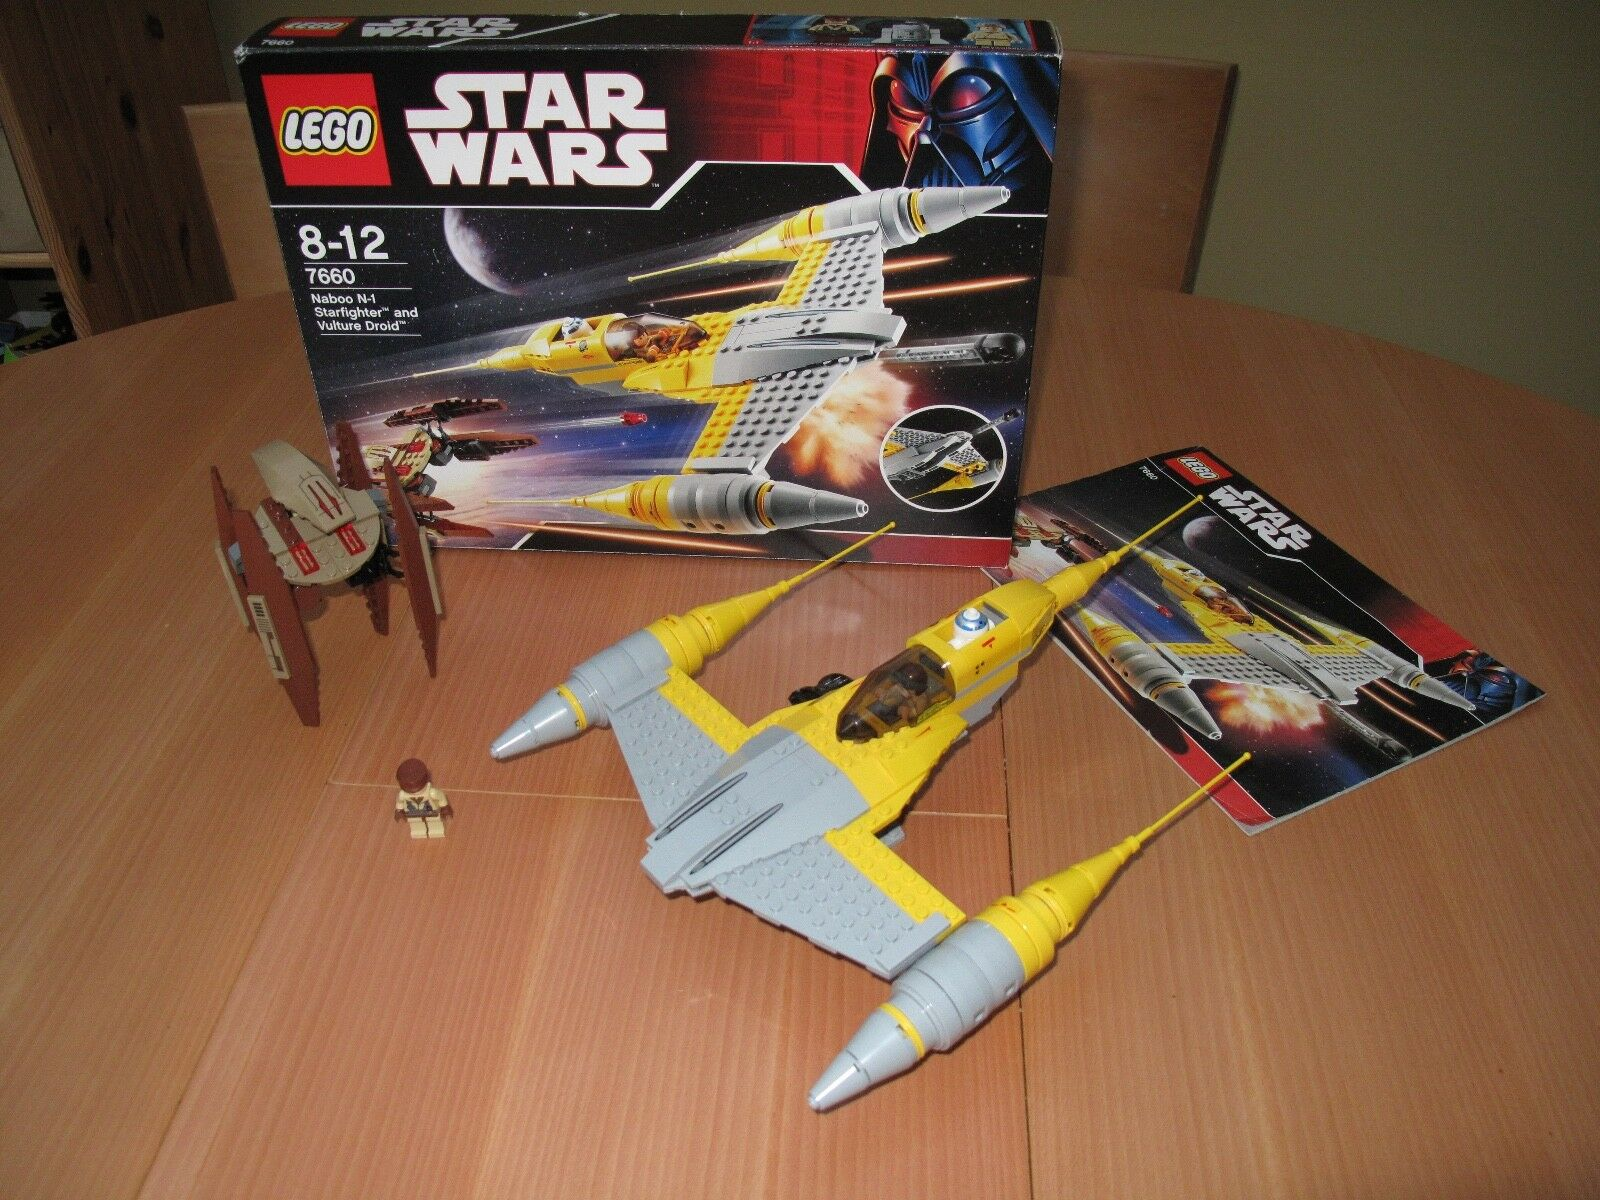 LEGO Star Wars Naboo N-1 Starfighter with Vulture Droid (7660)